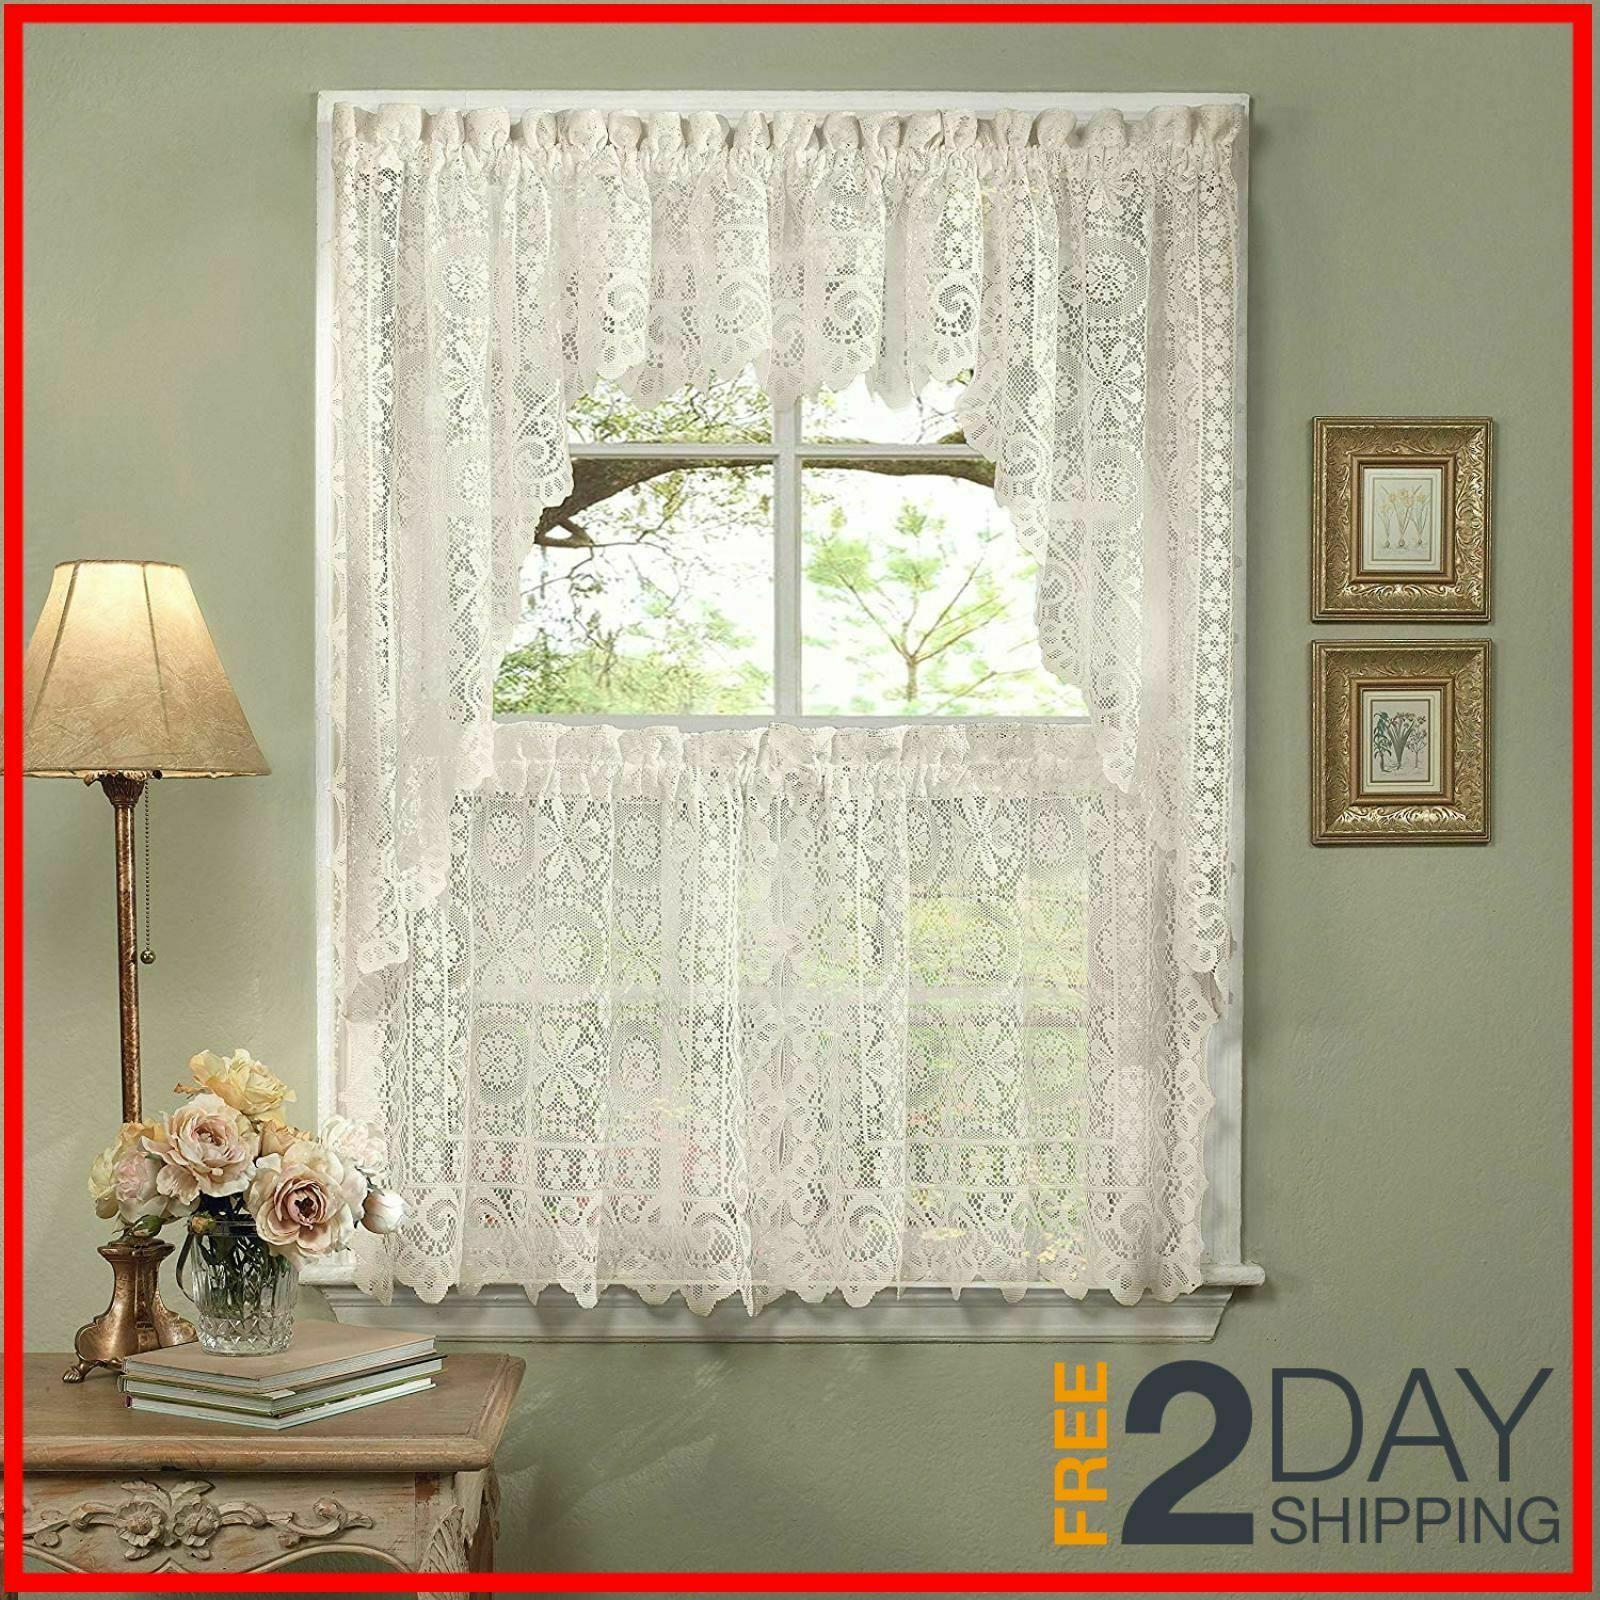 5 Pc Kitchen Curtain Set, Swag Pair, Val Intended For Most Current Chocolate 5 Piece Curtain Tier And Swag Sets (View 3 of 20)